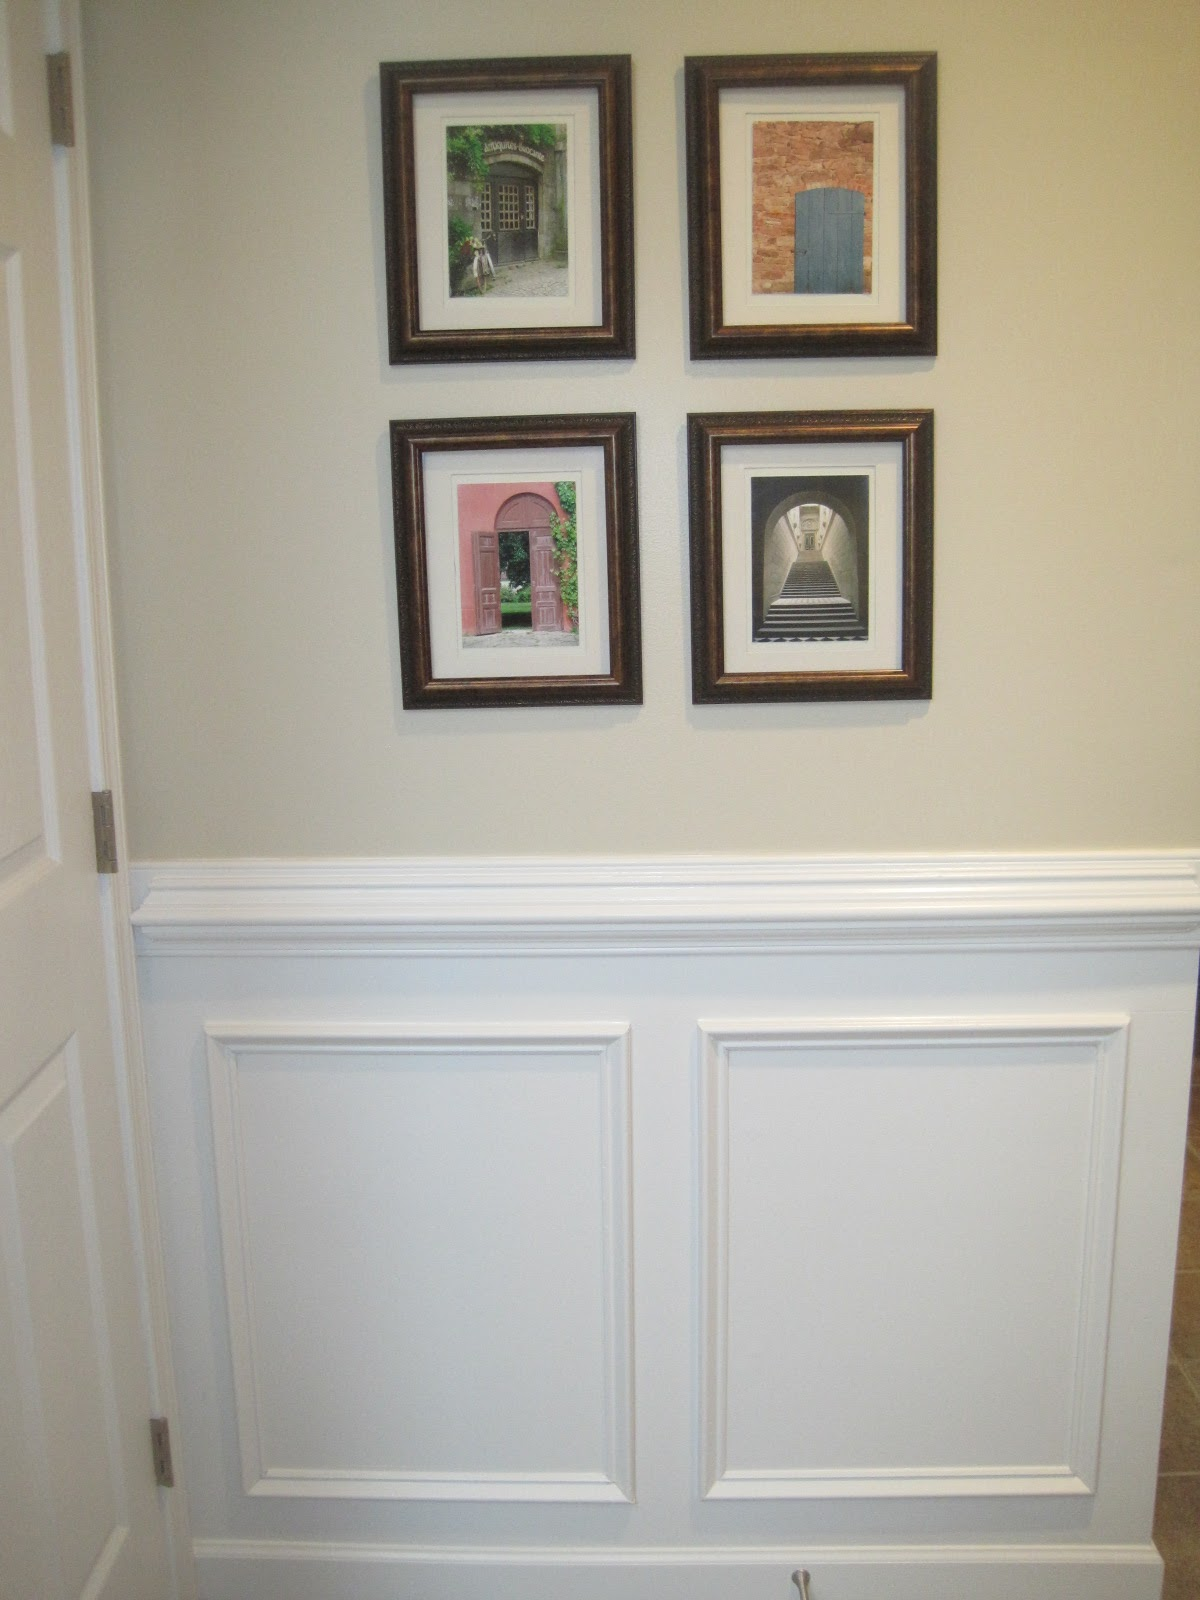 Commercial Chair Rail Kohls Dining Chairs Designed To Dwell Tips For Installing Wainscoting